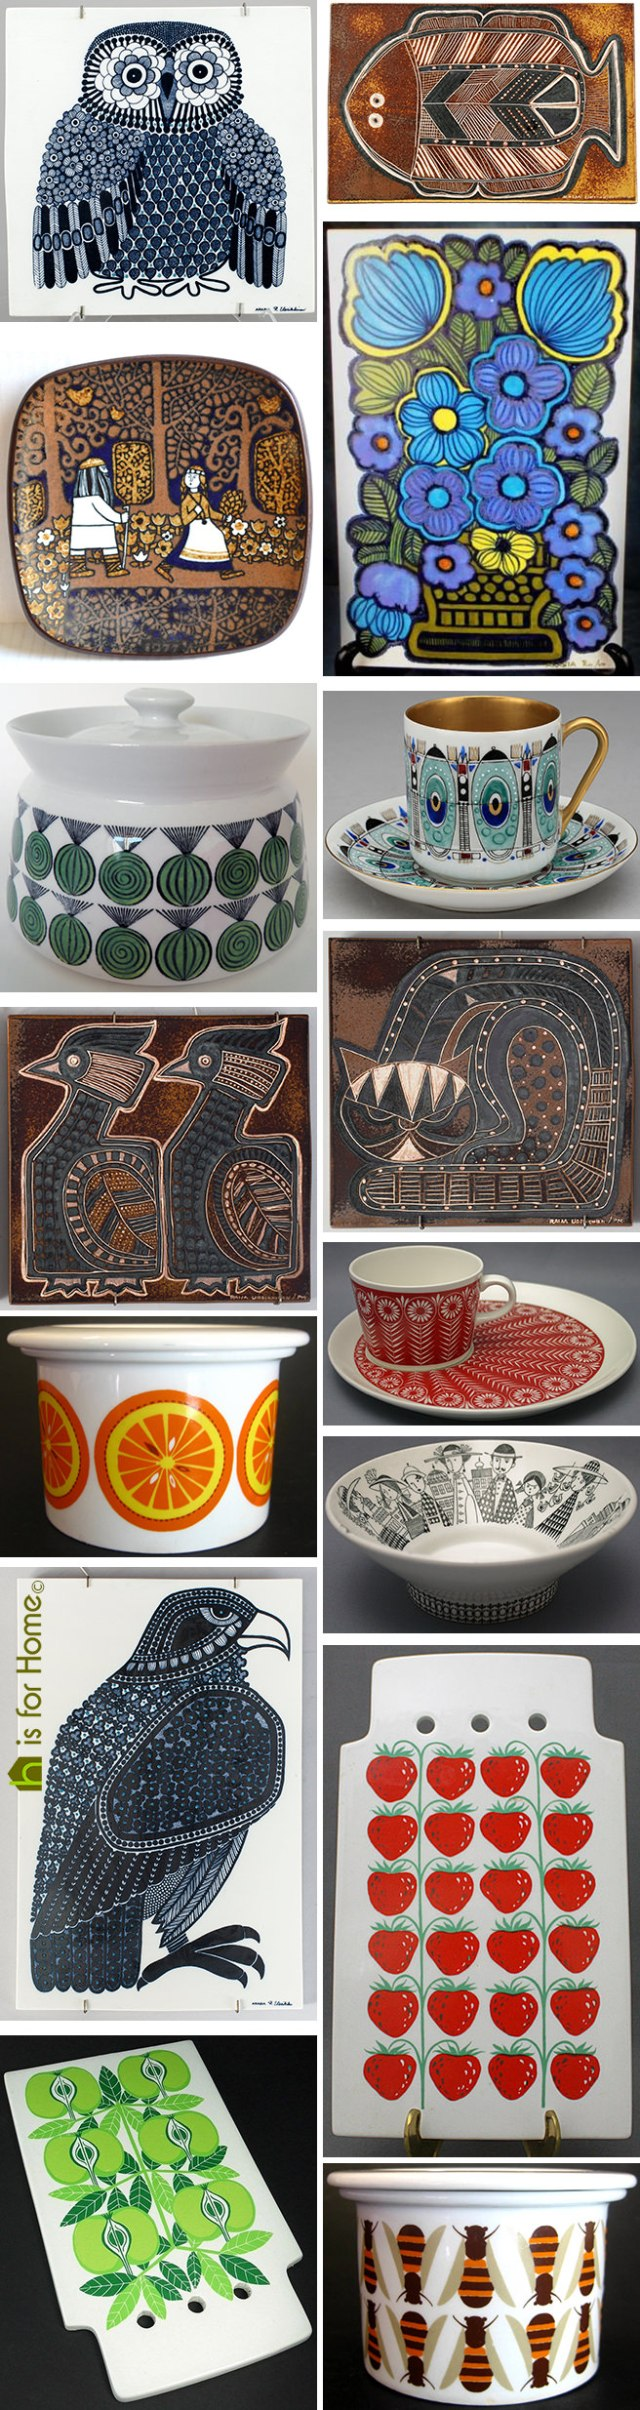 Mosaic of Raija Uosikkinen designs | H is for Home